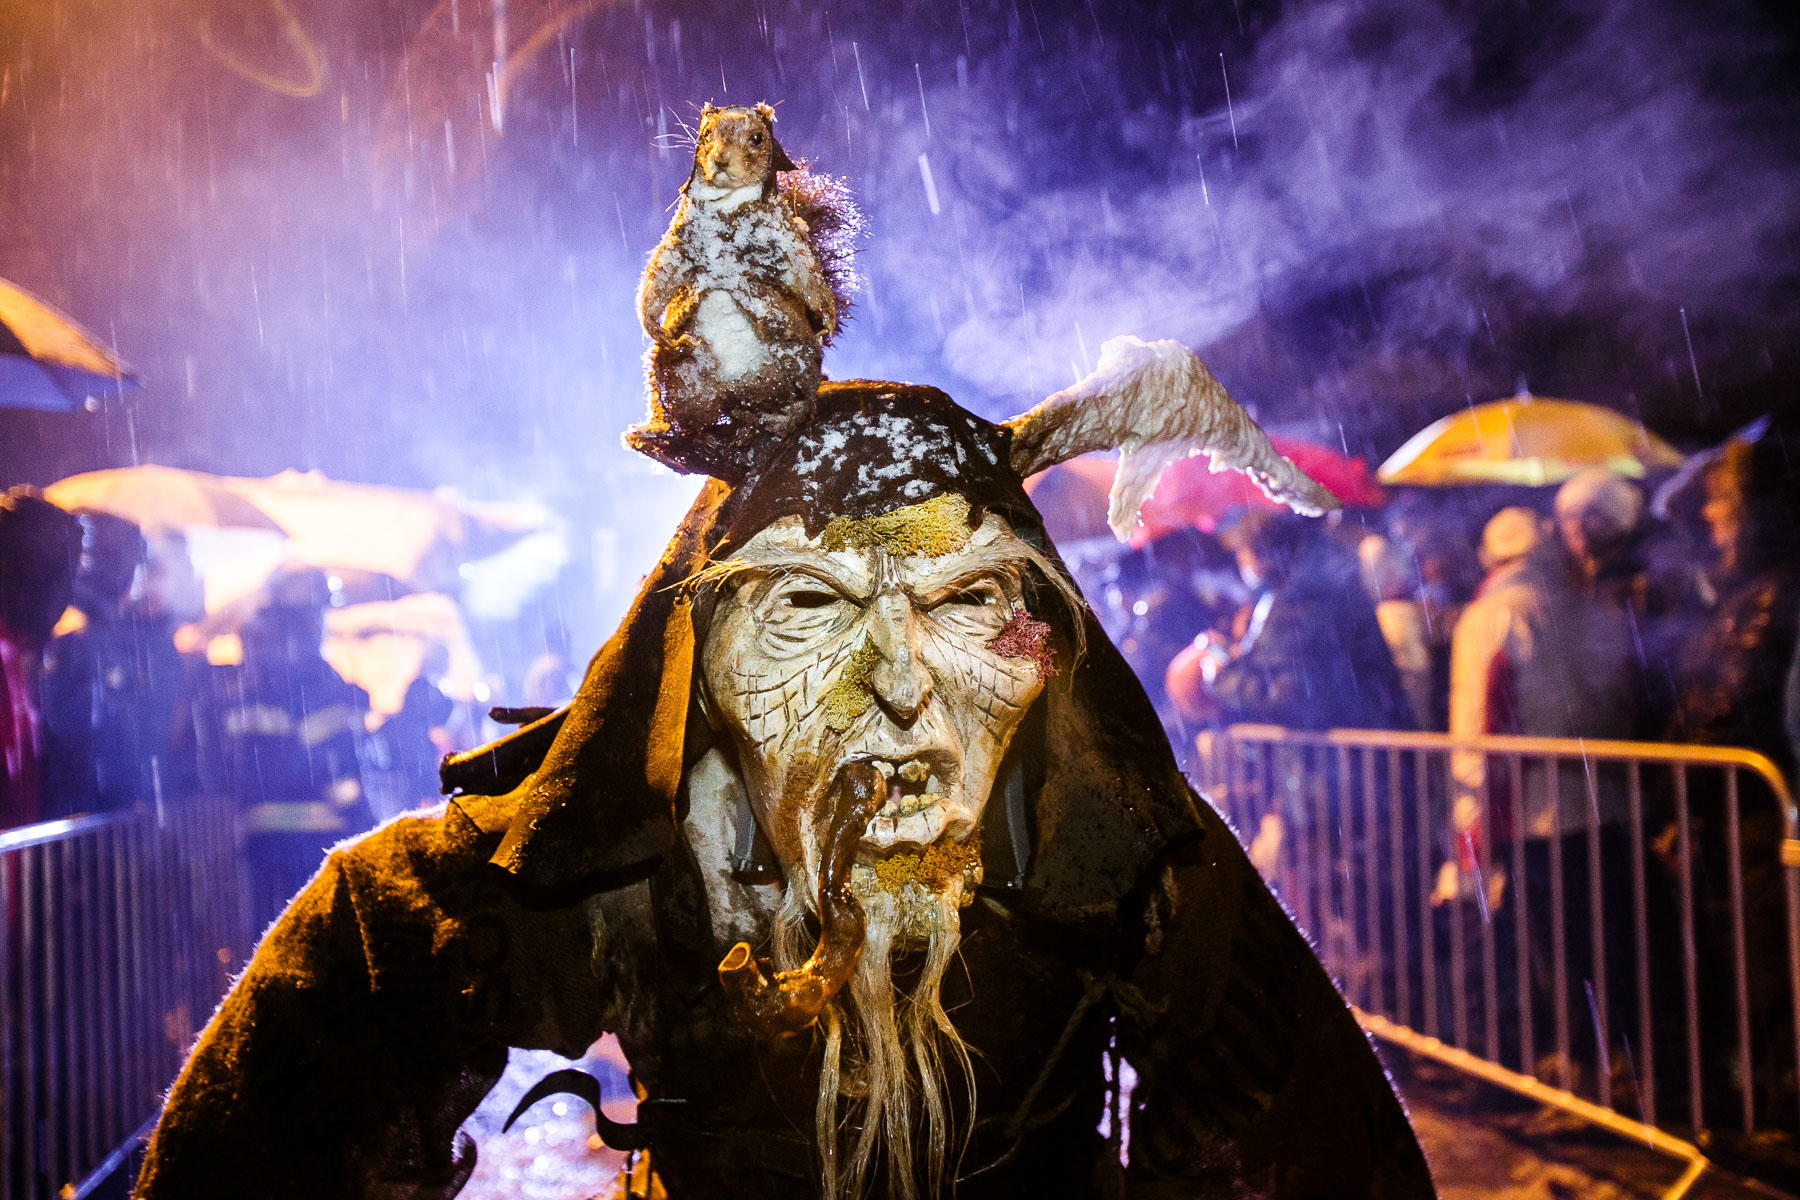 A participant dressed as a Krampus creature walks the street during the Krampus gathering in Goricane, Slovenia, Nov. 21, 2015. In Central European alpine folklore, Krampus is a demonic creature traditionally following St. Nicholas and angels on the evening of December 5. It pries on children who were not good during the year.